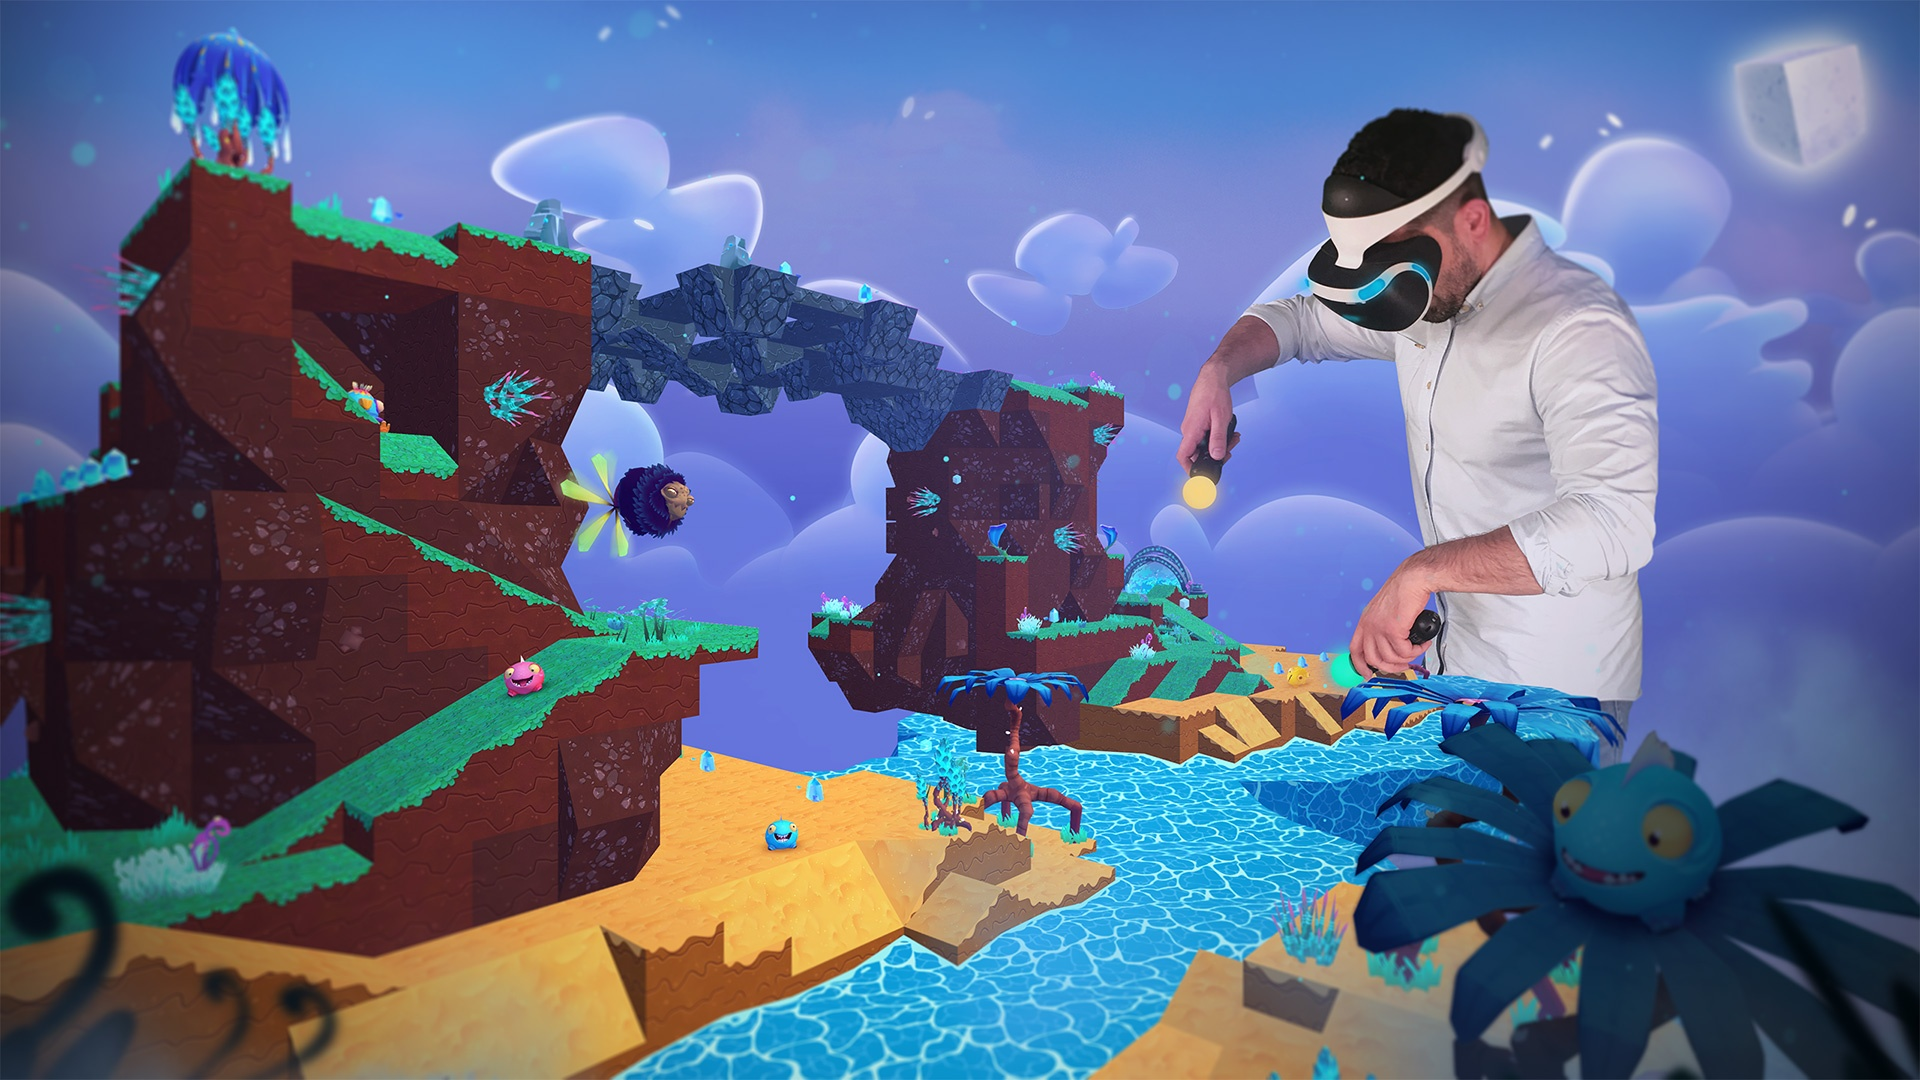 3D, Action, Brainseed Factory, Platformer, PlayStation VR, PS4, PS4 Review, PSVR, PSVR Review, Puzzle, Rating 6/10, Squishies, Squishies Review